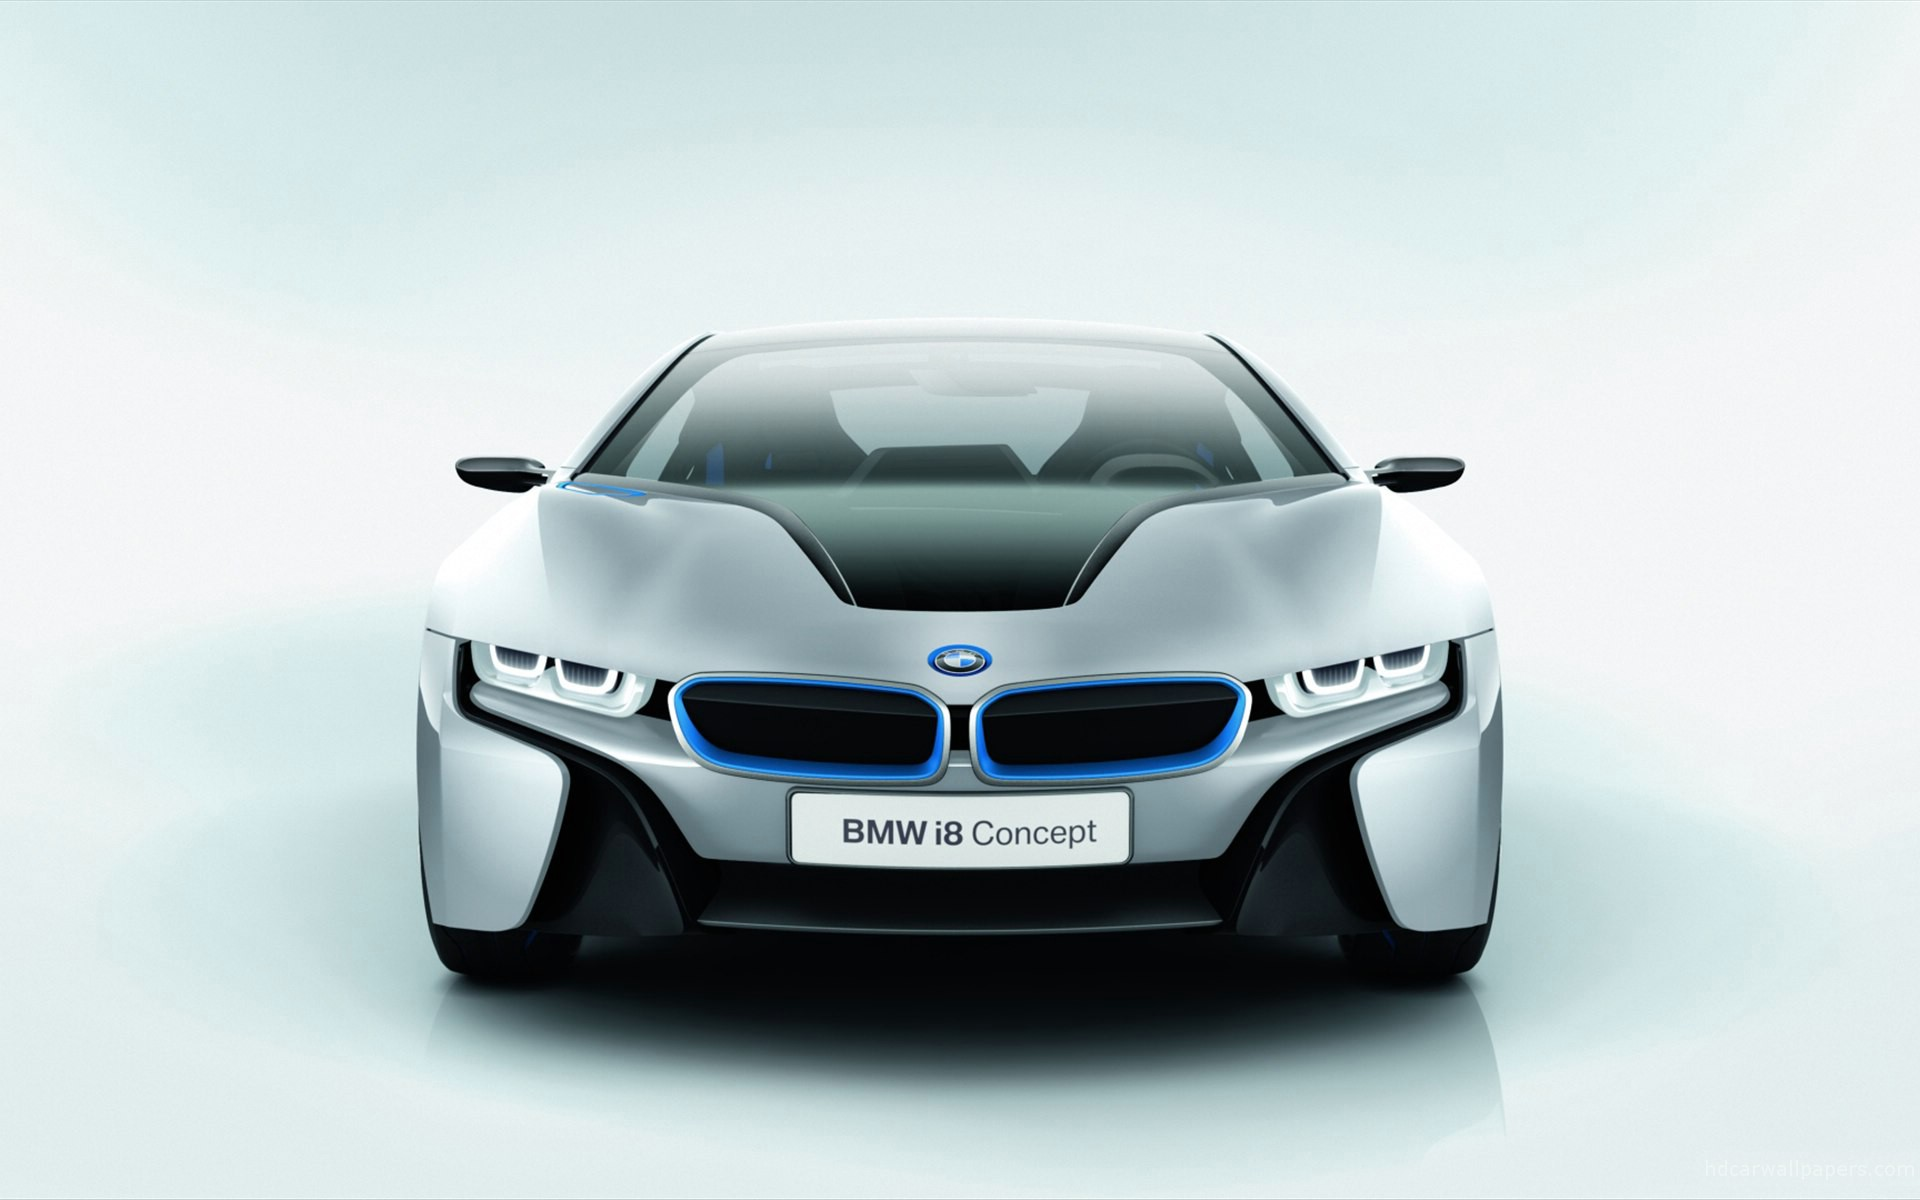 1920x1200 - BMW i3 Concept Wallpapers 7